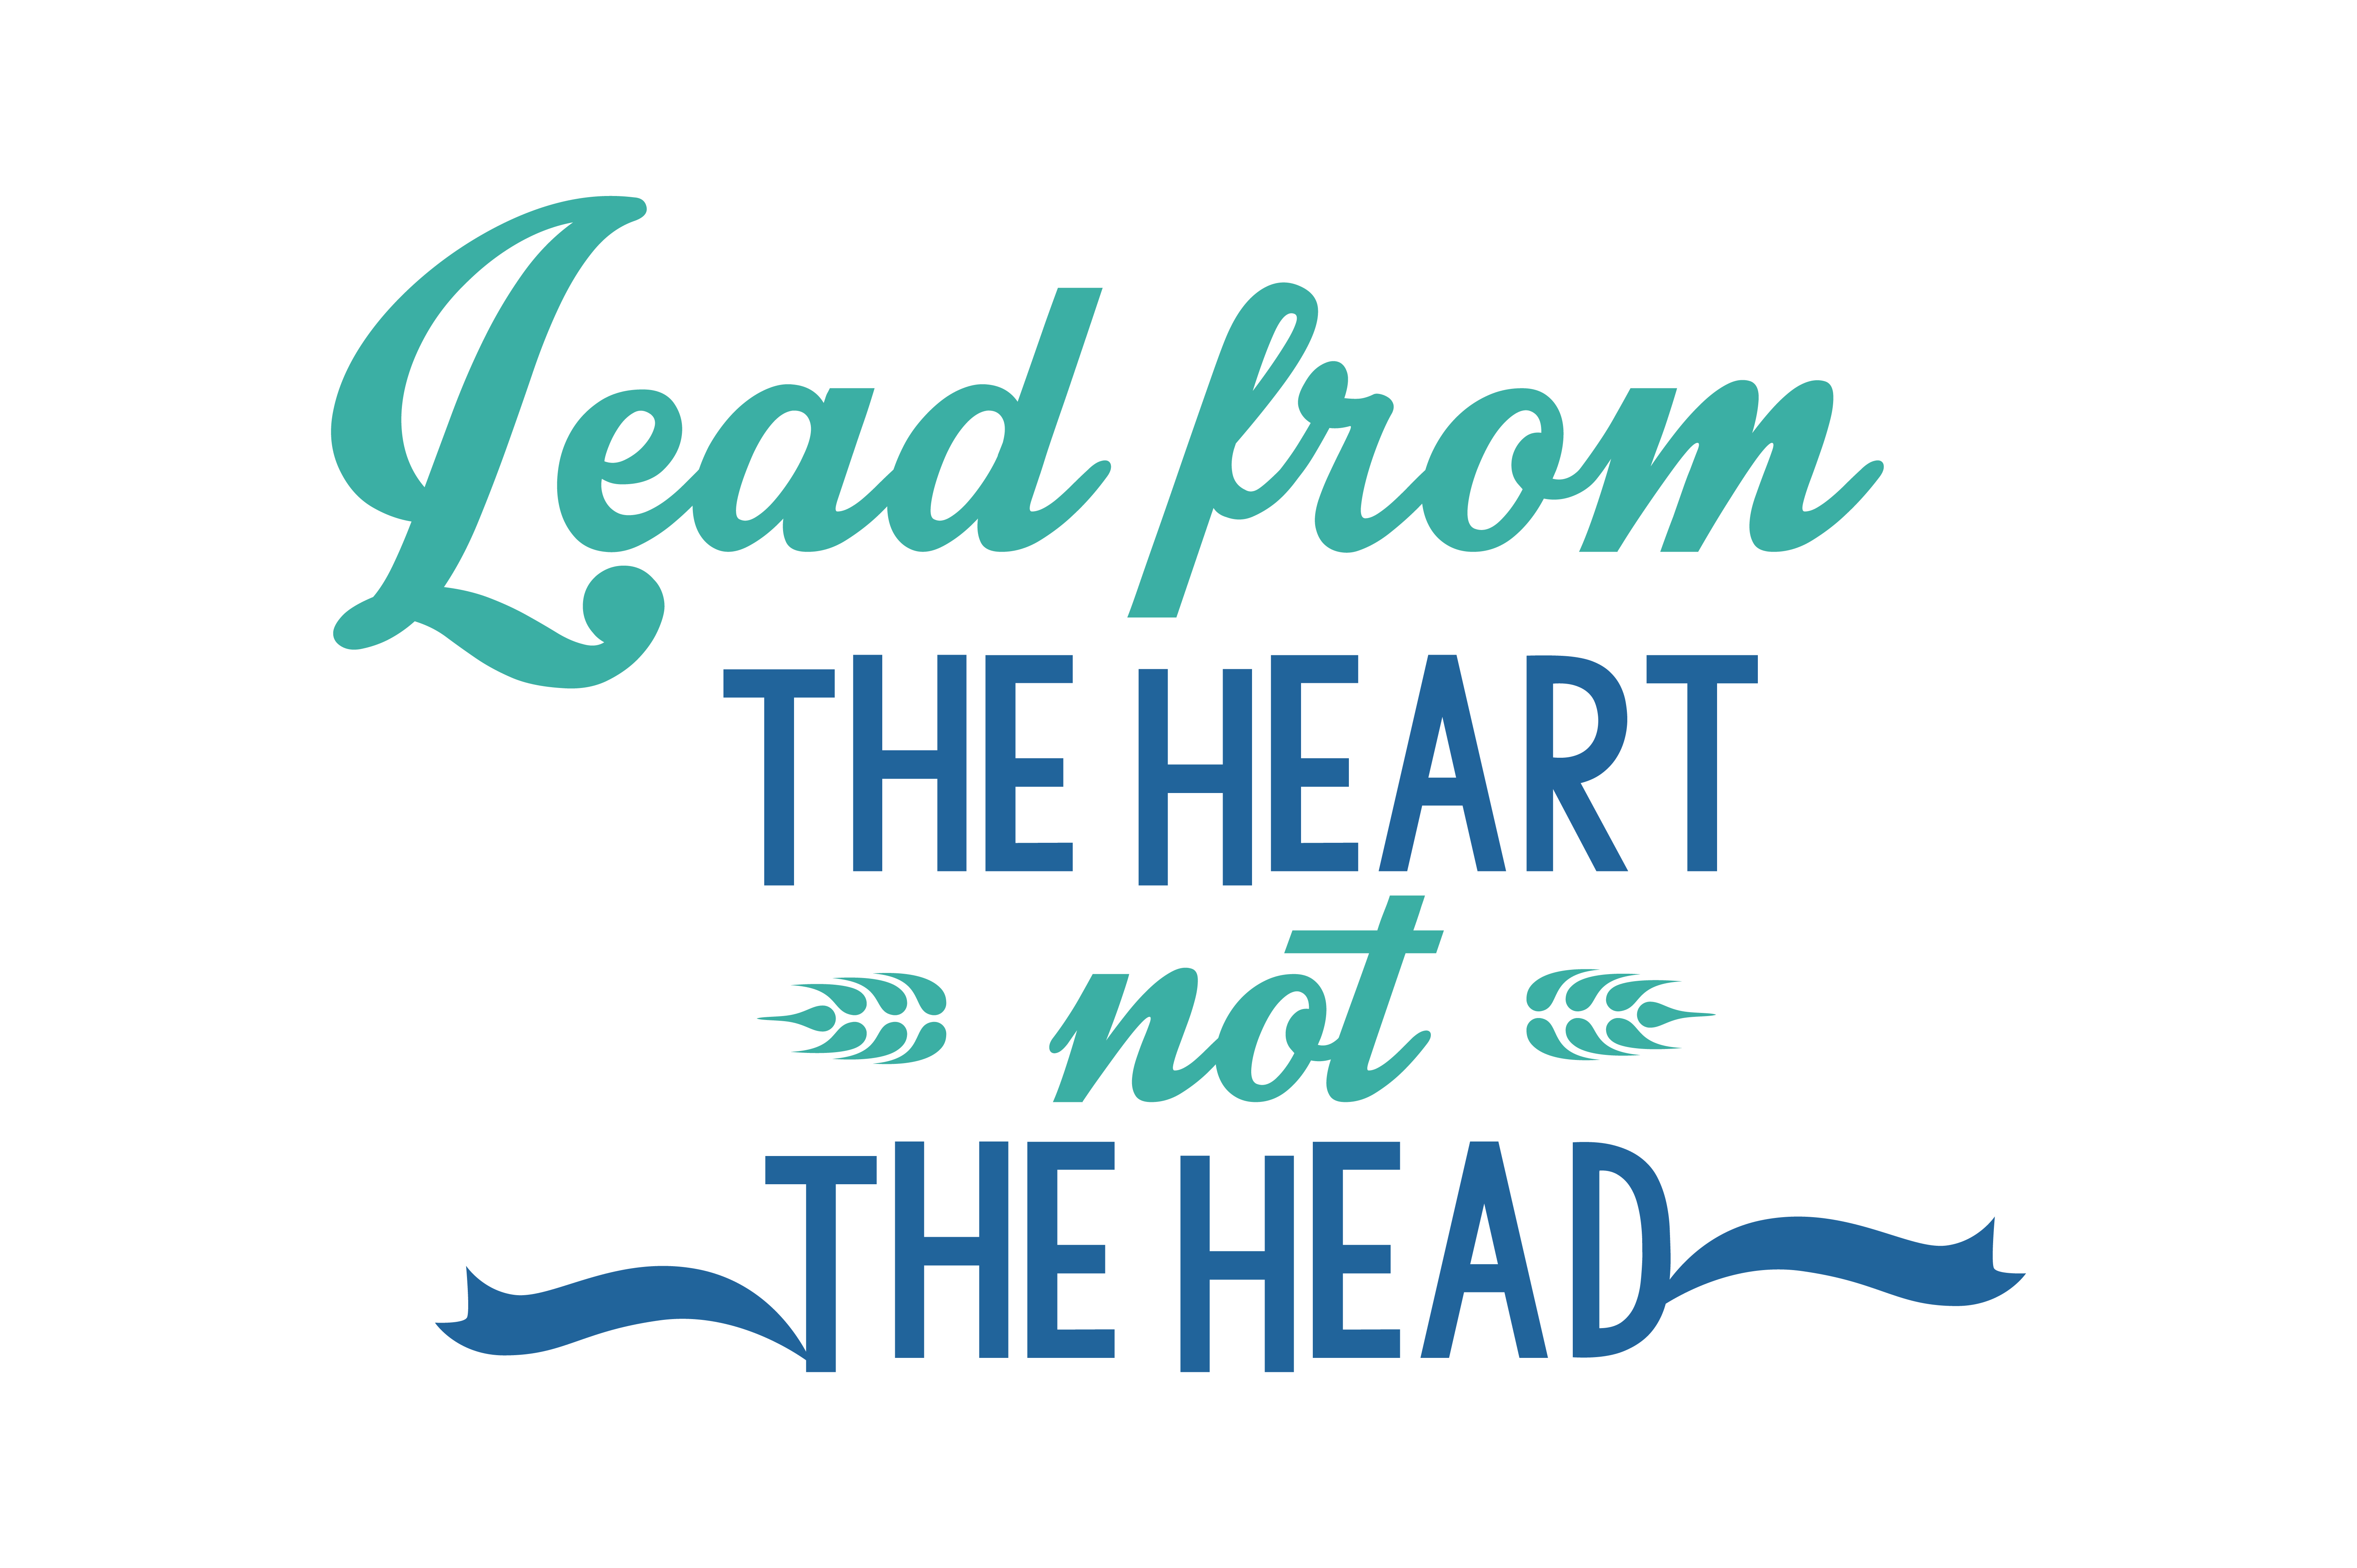 Download Free Lead From The Heart Not The Head Quote Svg Cut Graphic By Thelucky Creative Fabrica for Cricut Explore, Silhouette and other cutting machines.